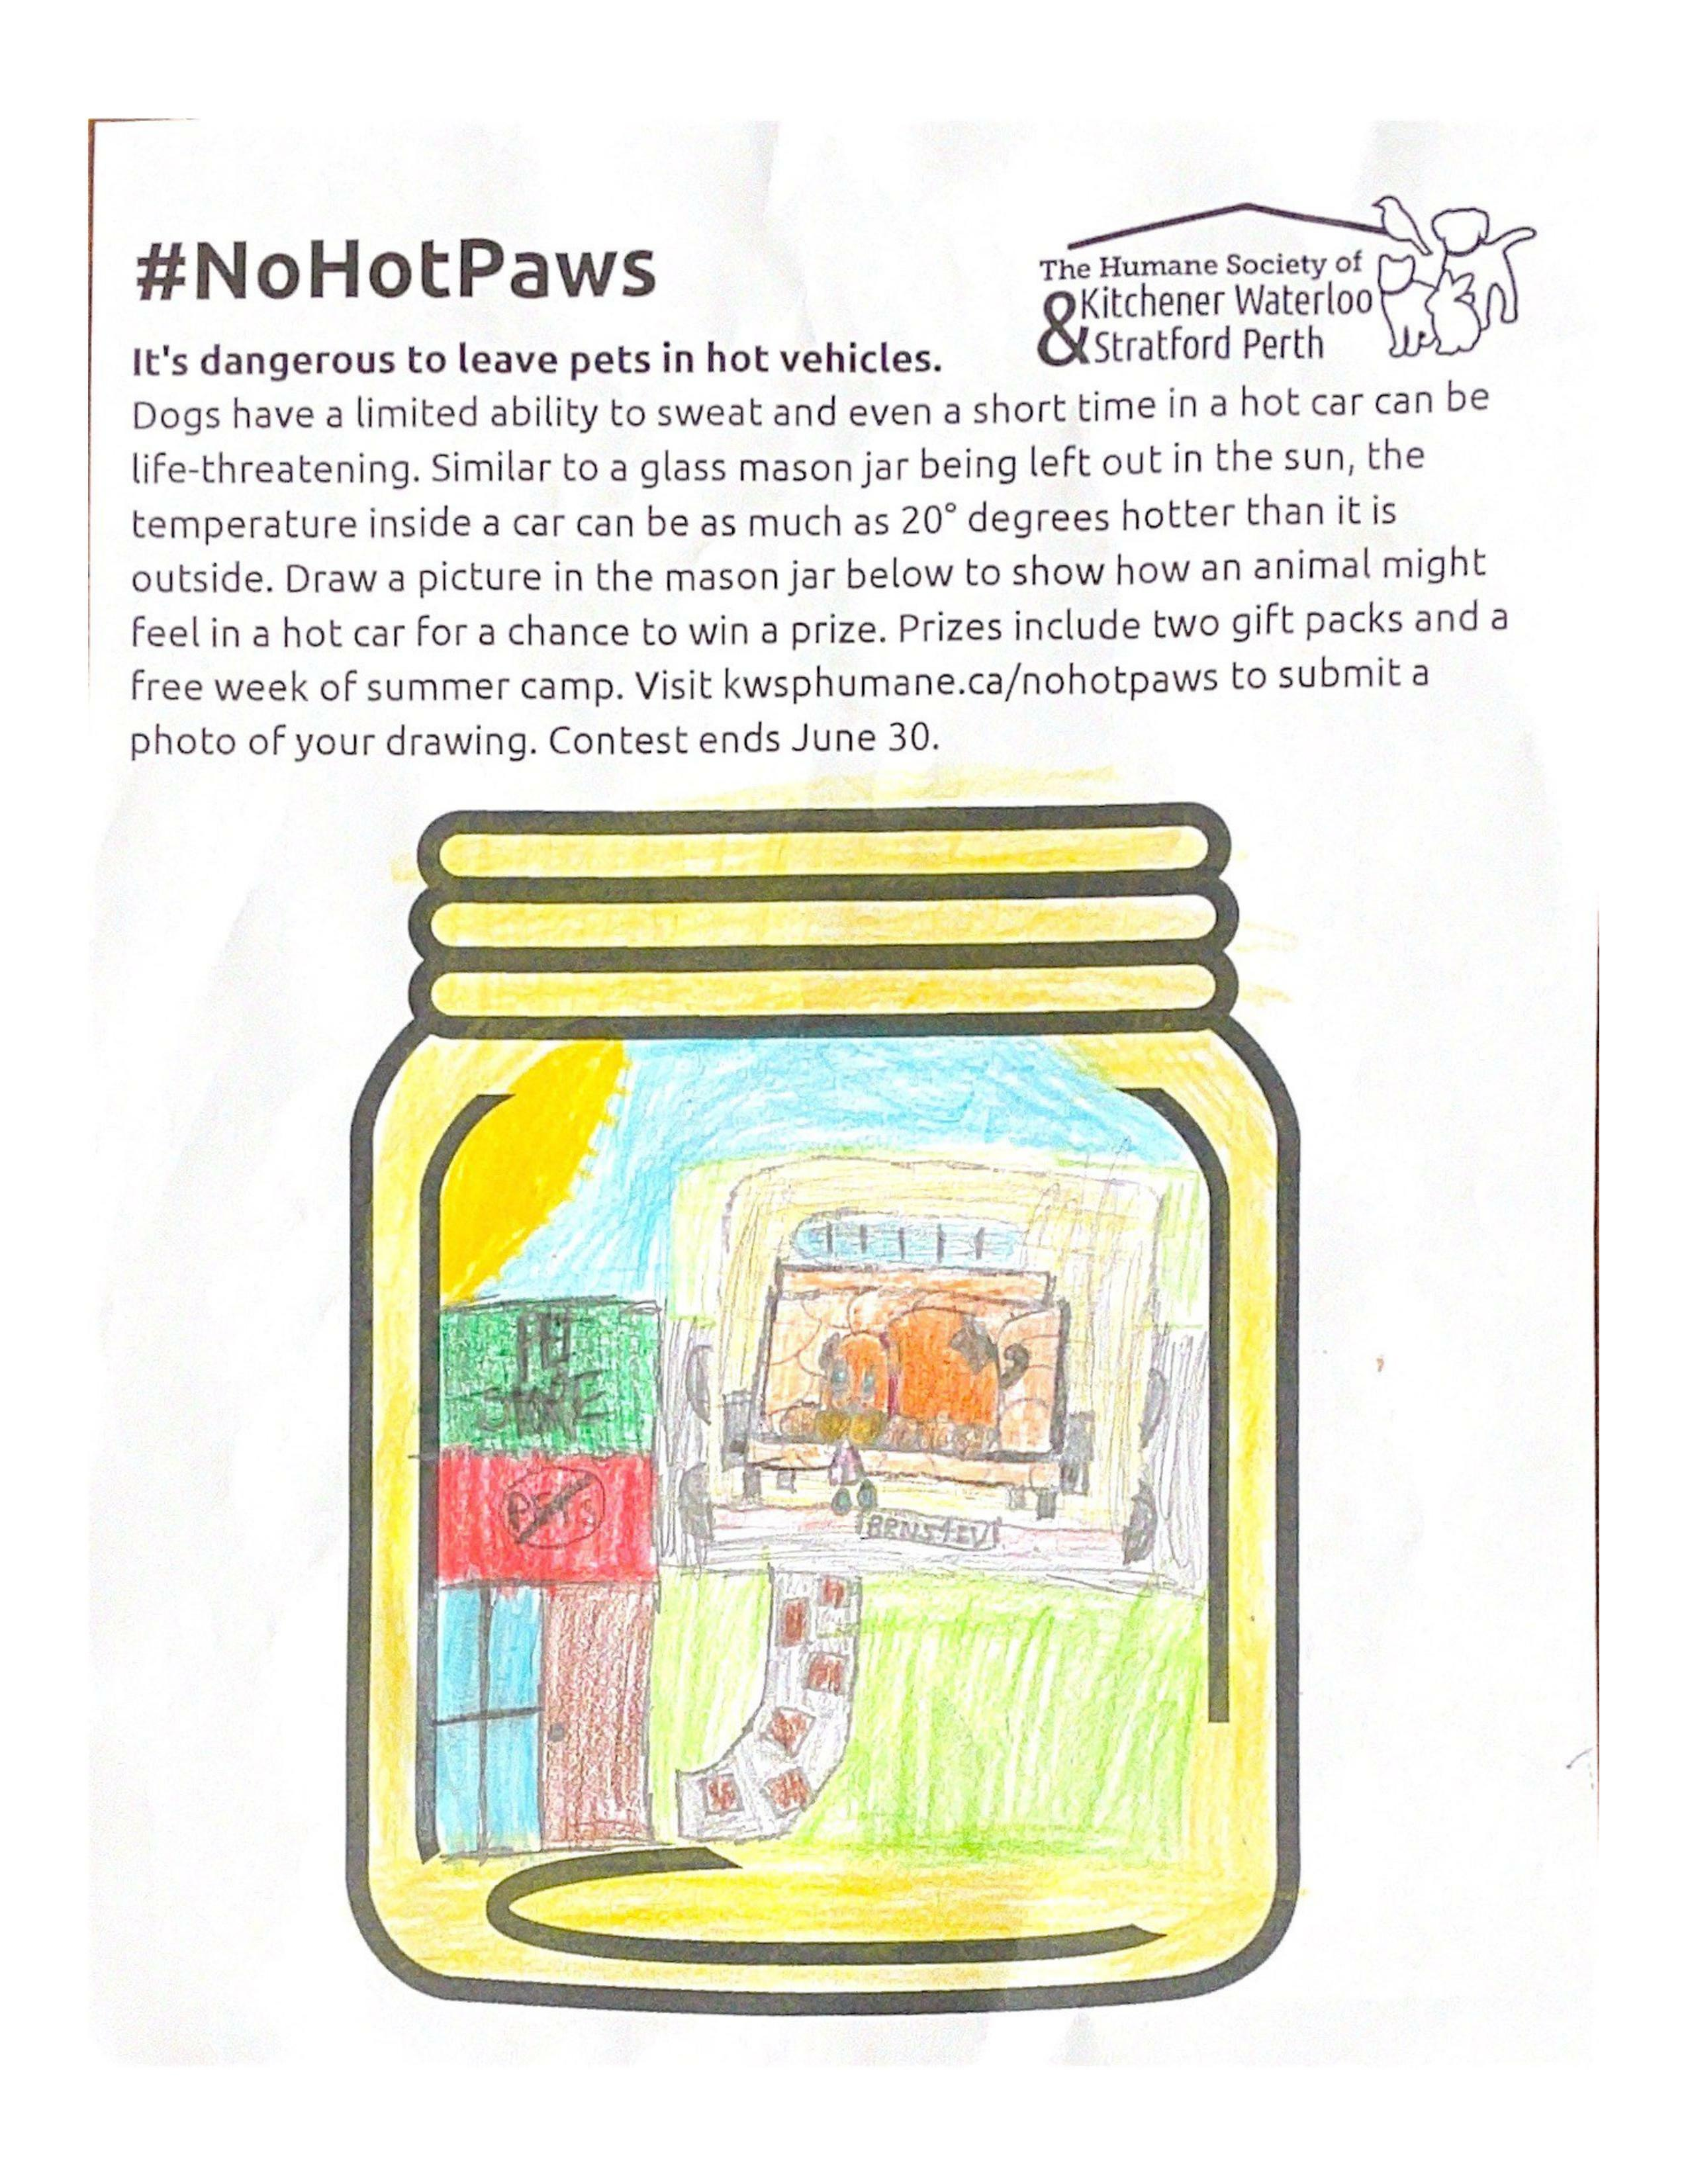 Dog in a car on a hot sunny day while his owner is in the pet store that does not allow animals and he is left alone in the hot car on a hot sunny day - Aly Elinesky (age 10)